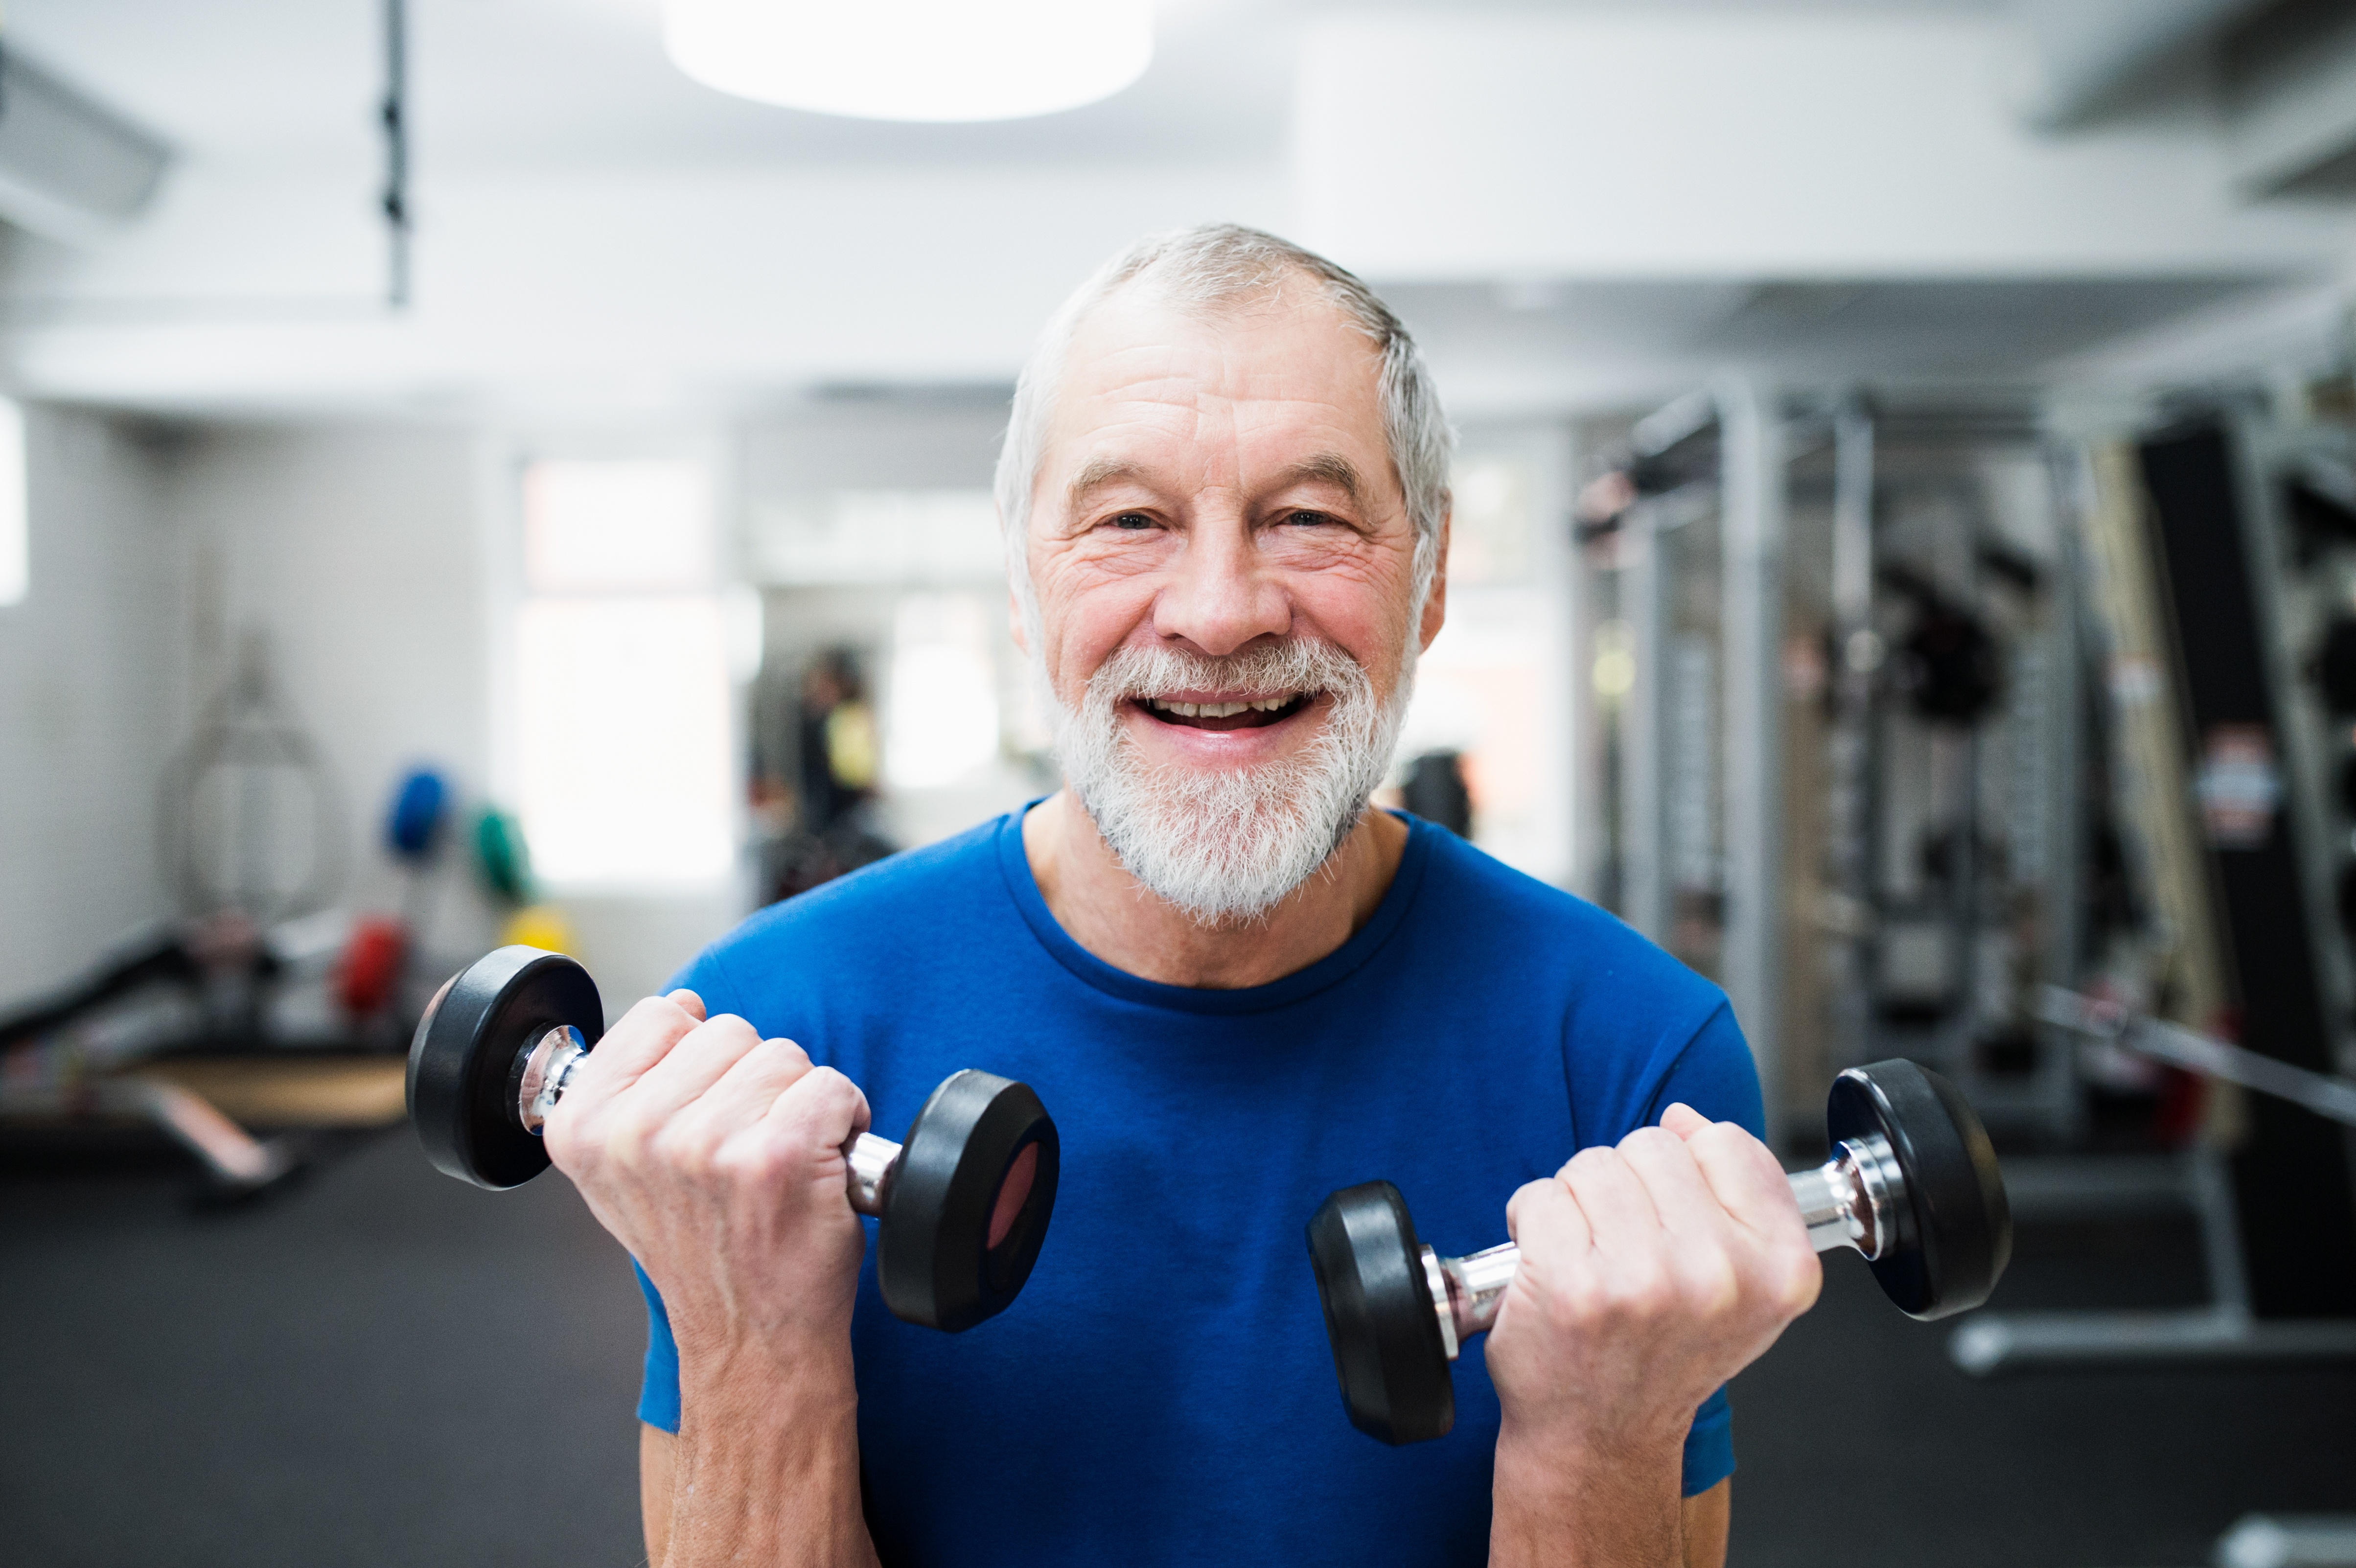 Improving senior mobility with exercise and fall prevention tips